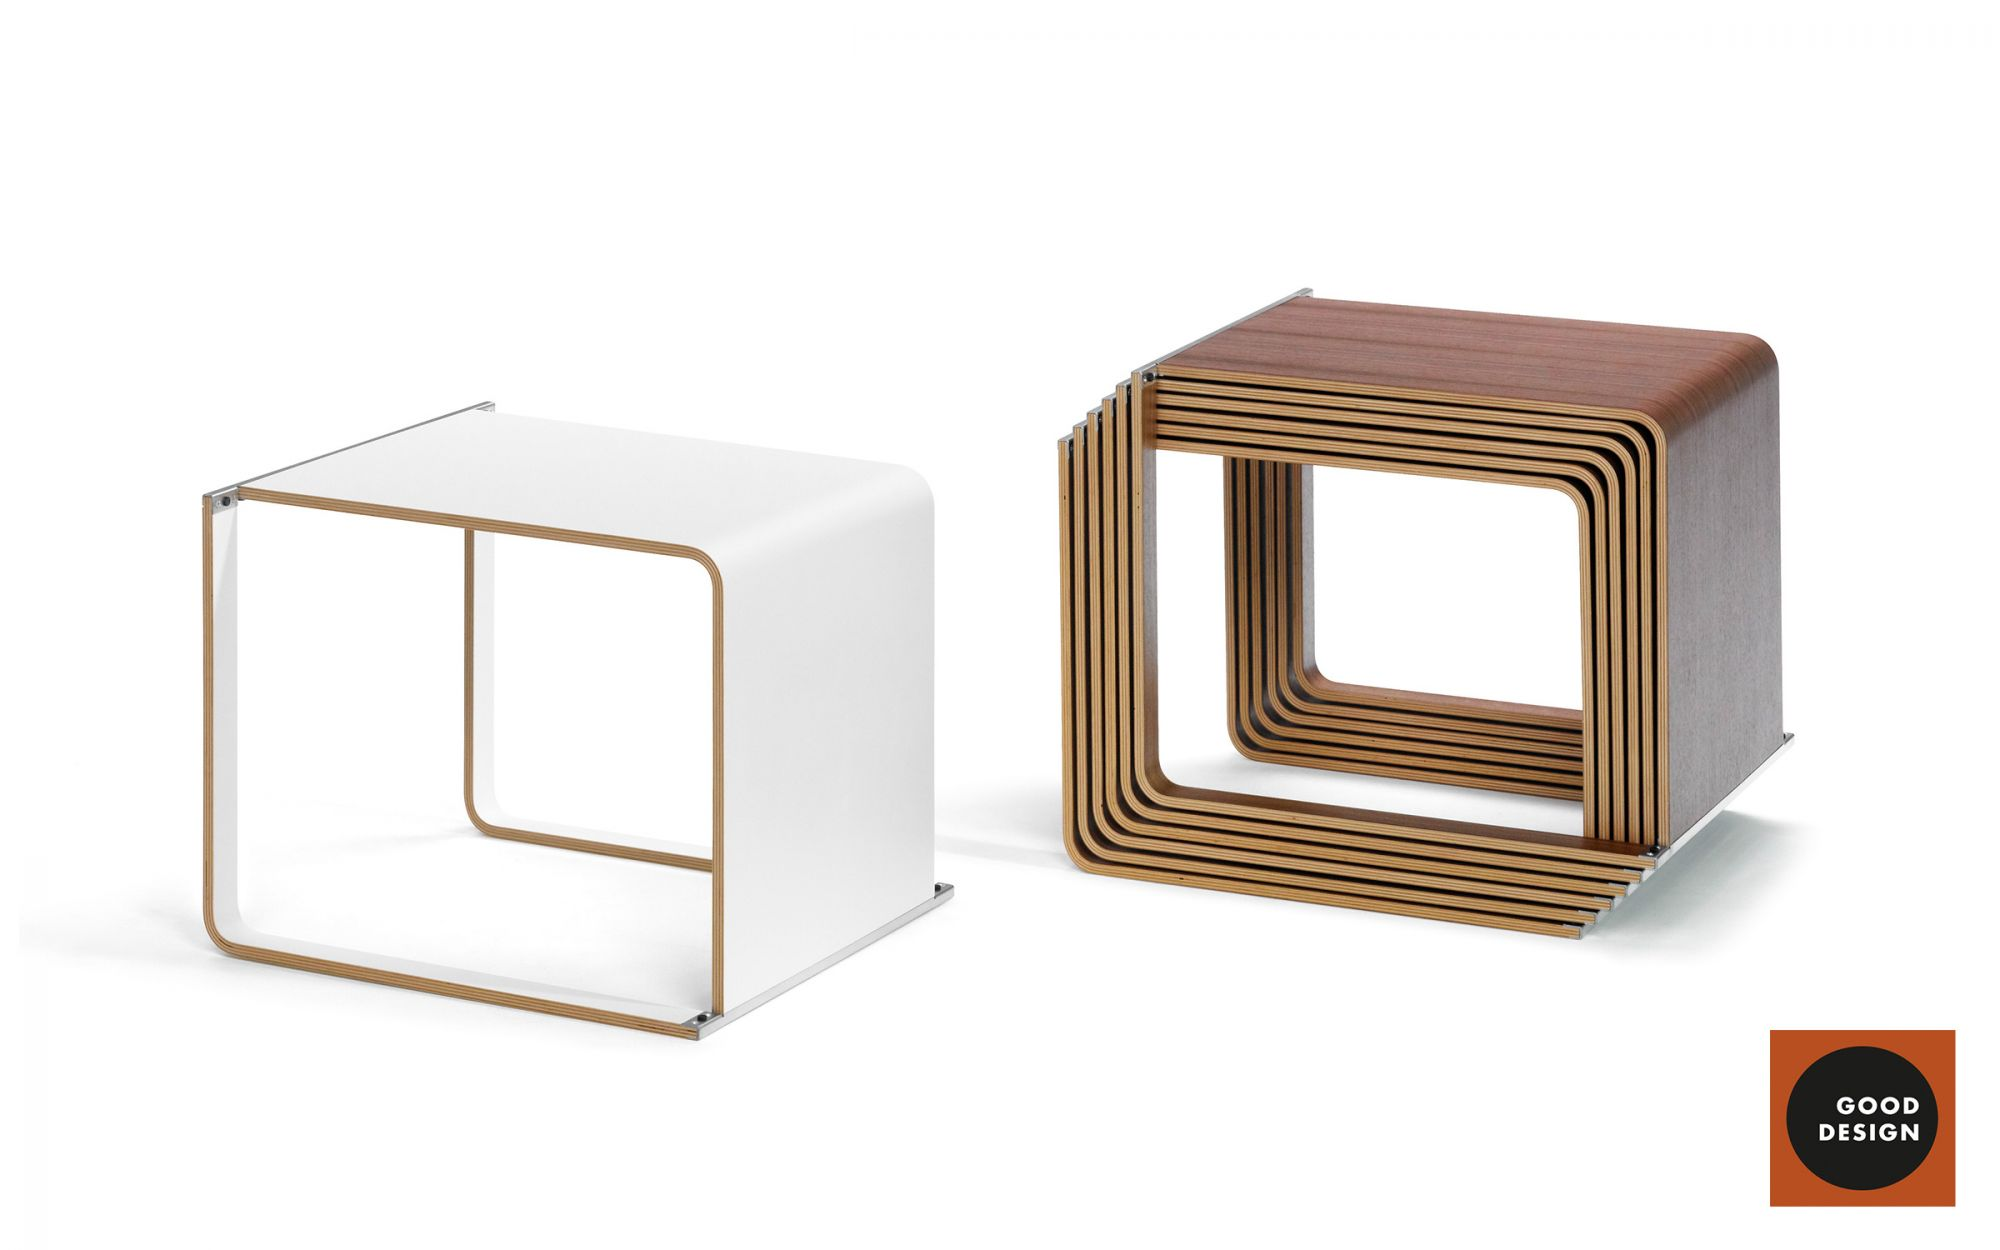 Stool-Upside-stackable-plywood